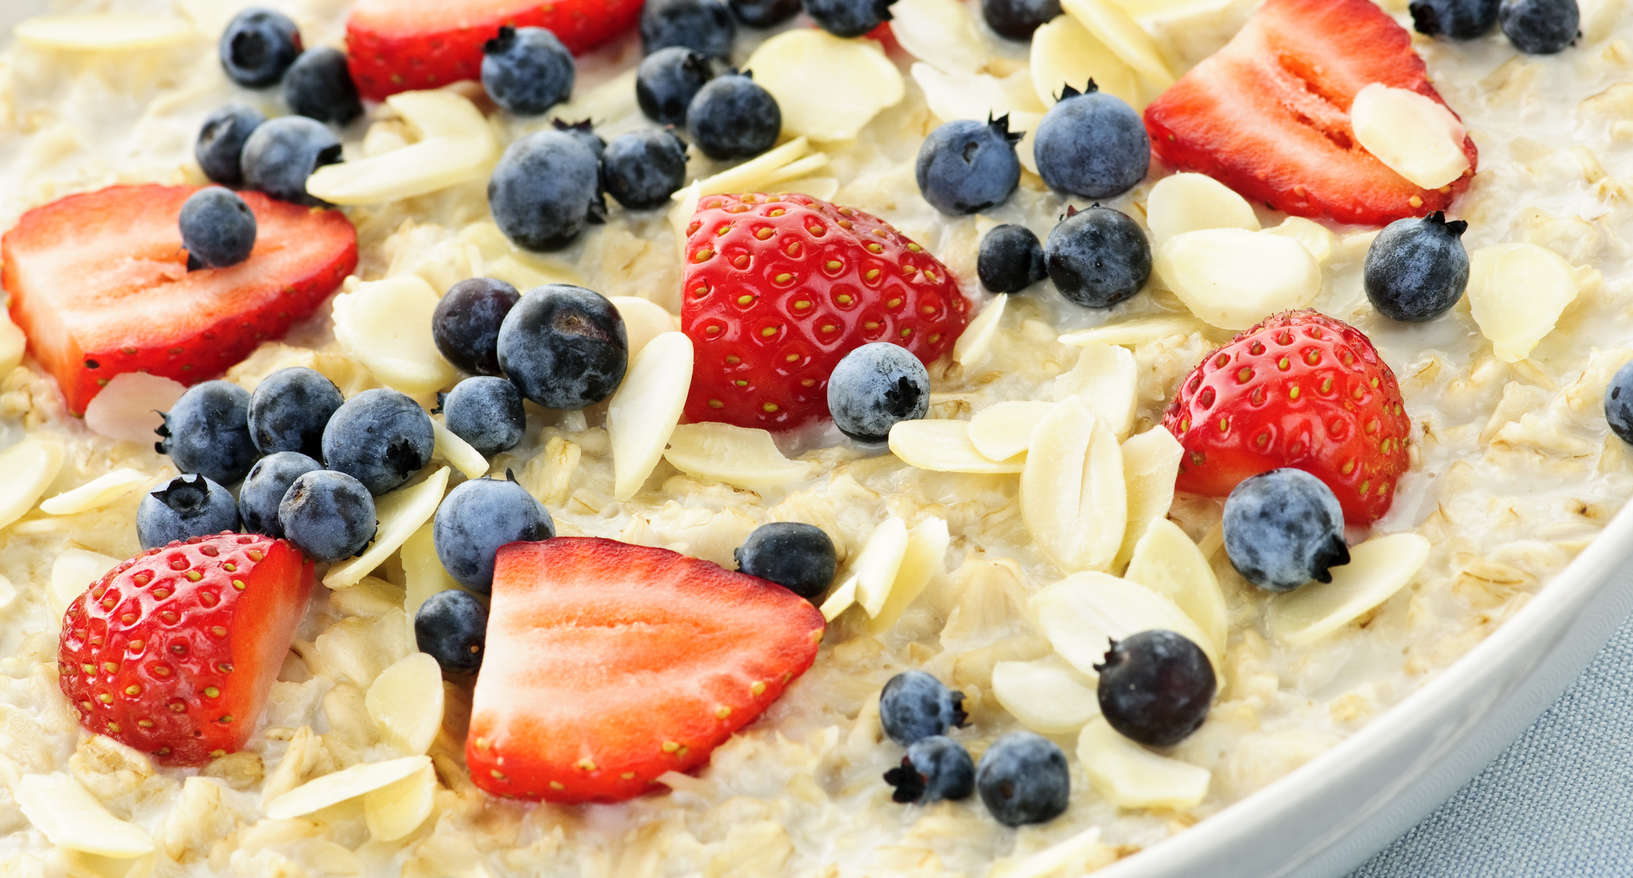 gluten-free oatmeal with fruit is a great solution for diabetics, celiacs and food allergic guests.